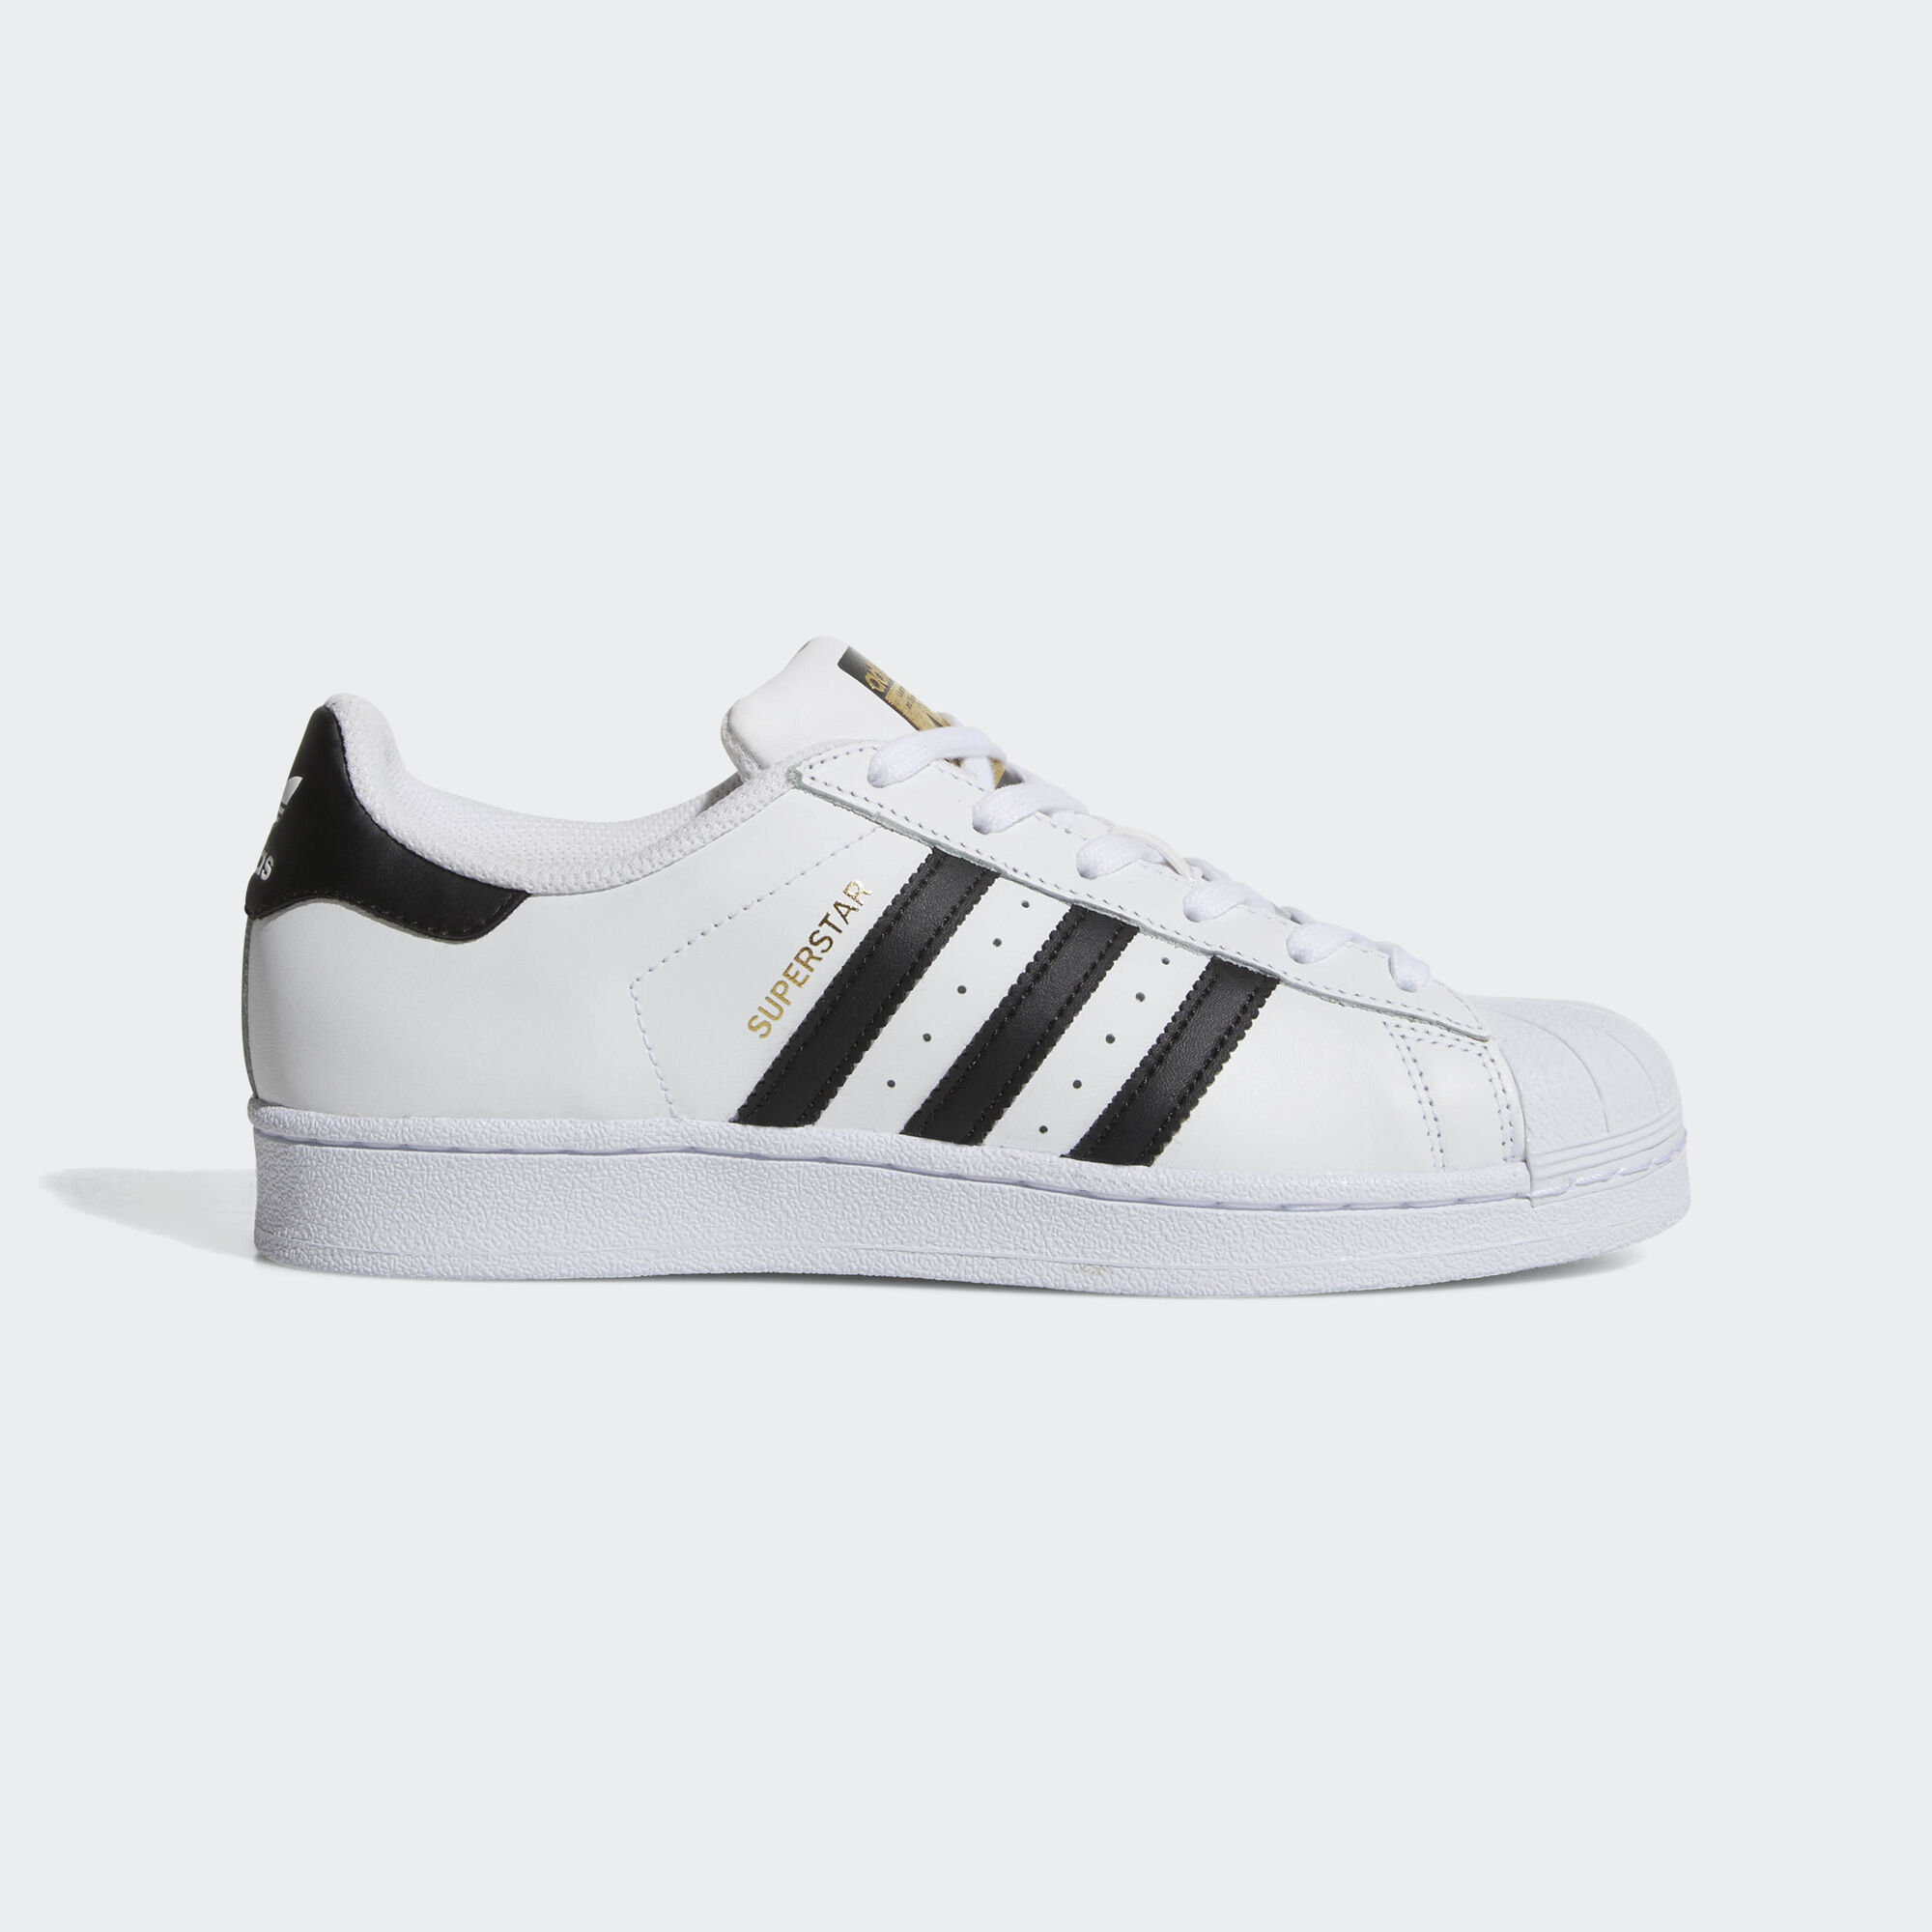 new product 8ffd4 ab277 ... adidas neo leather gold red adidas womens superstar shoes white core  black c77153 ...